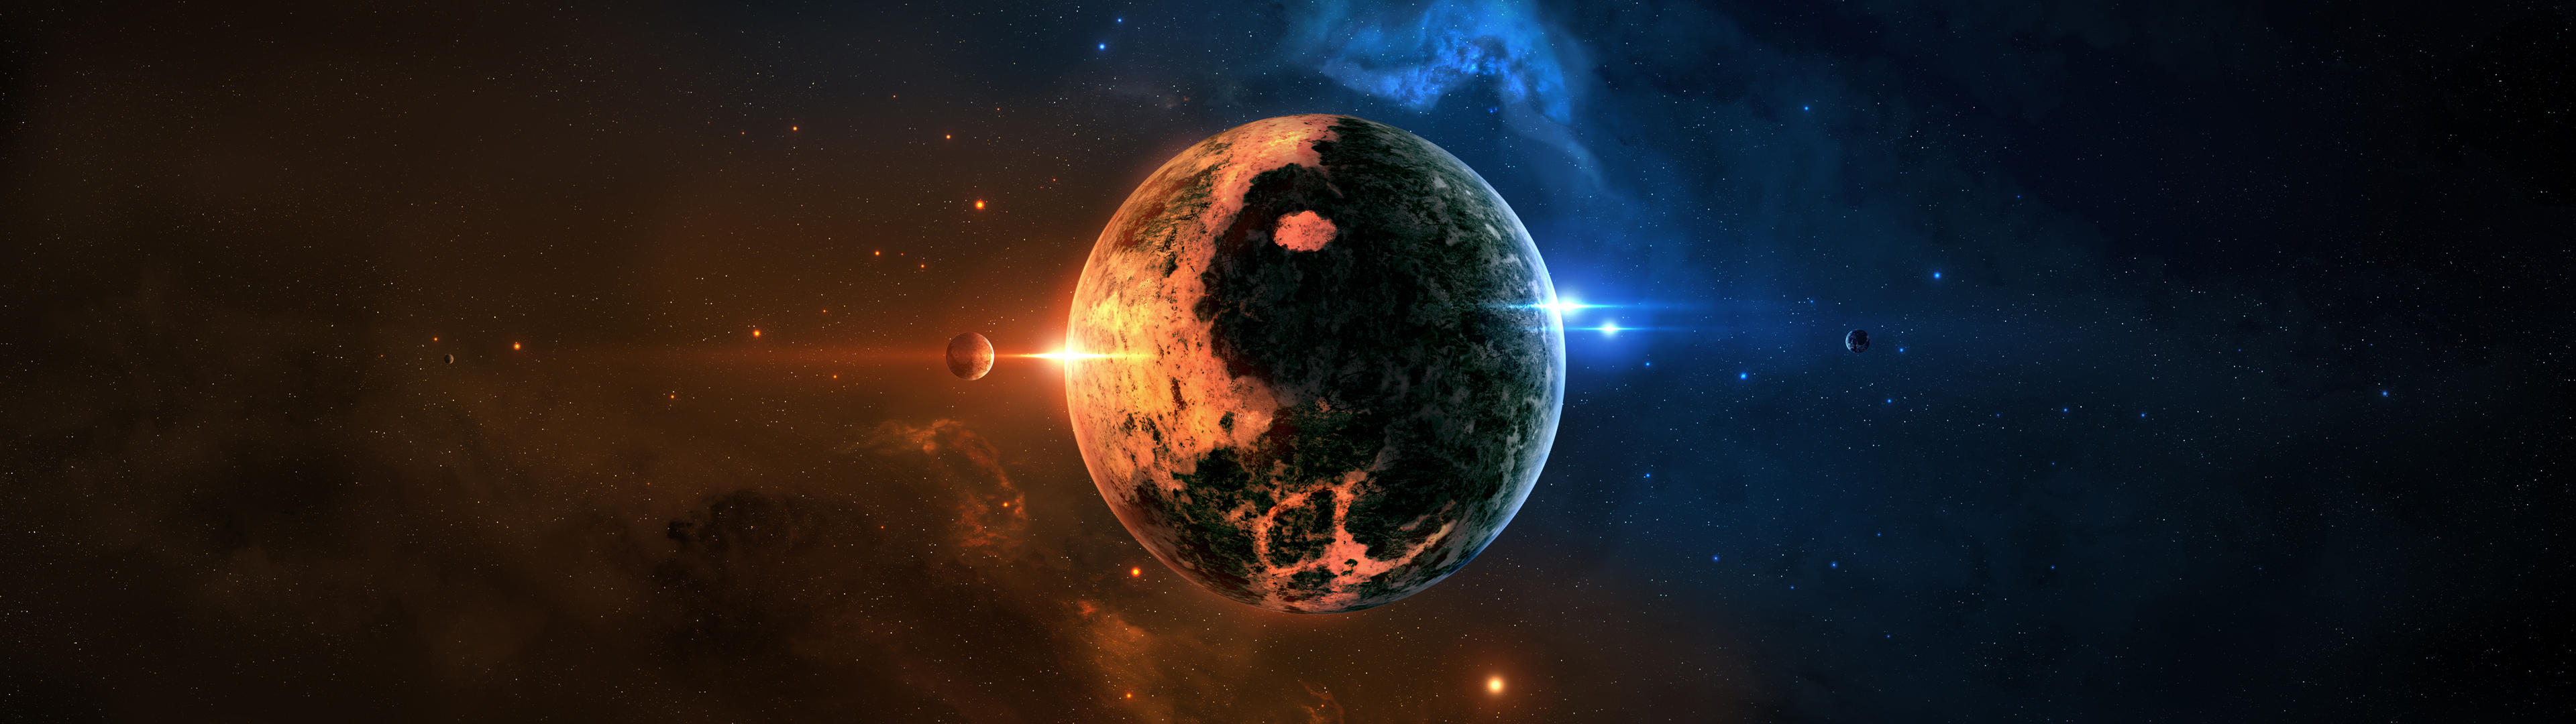 Planet-In-Outer-Space-Dual-Screen-x1080-wallpaper-wp3809251